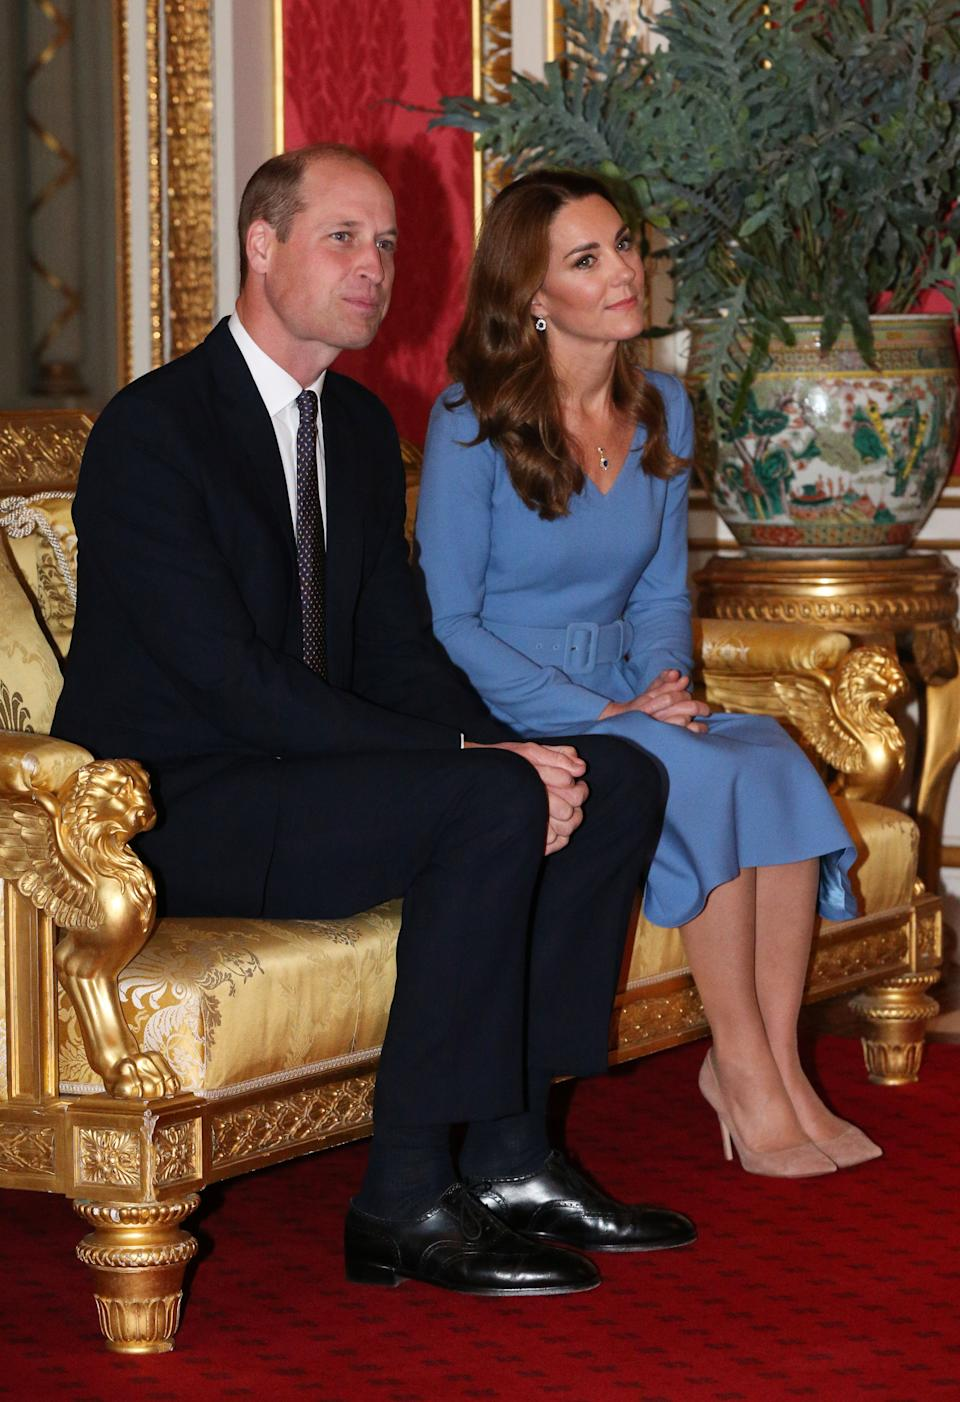 The Duke and Duchess of Cambridge during an audience with the President of Ukraine, Volodymyr Zelenskyy, and his wife, Olena at Buckingham Palace, London.